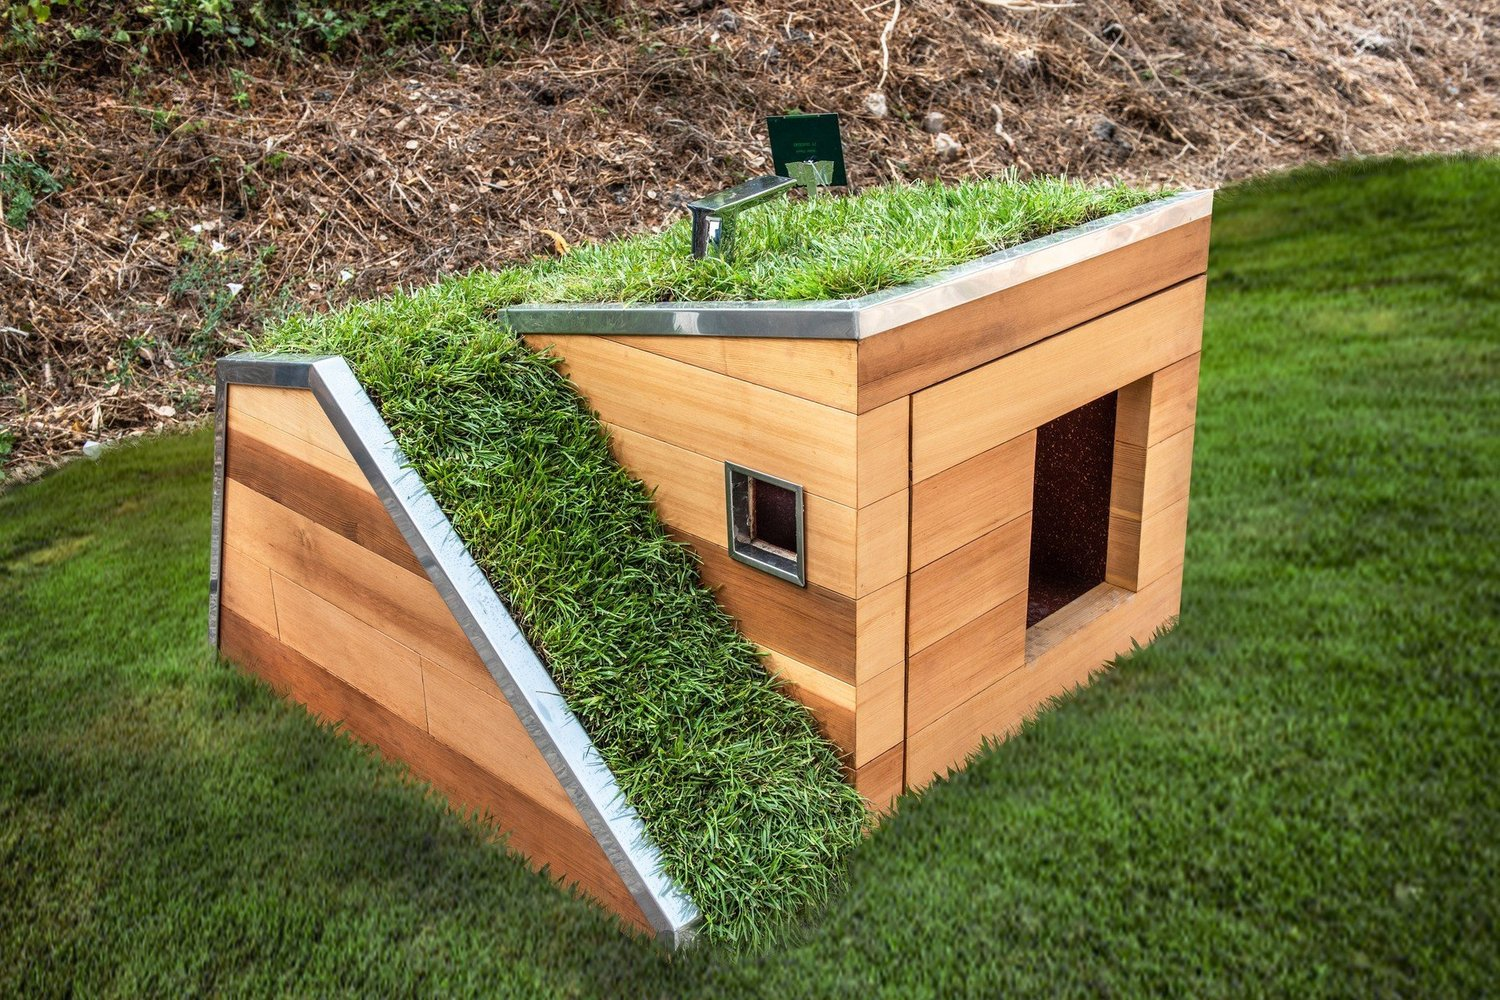 Studio Schicketanz Modern Dog House Is Made With Grass Ramp, and An Automatic Water Faucet On Top